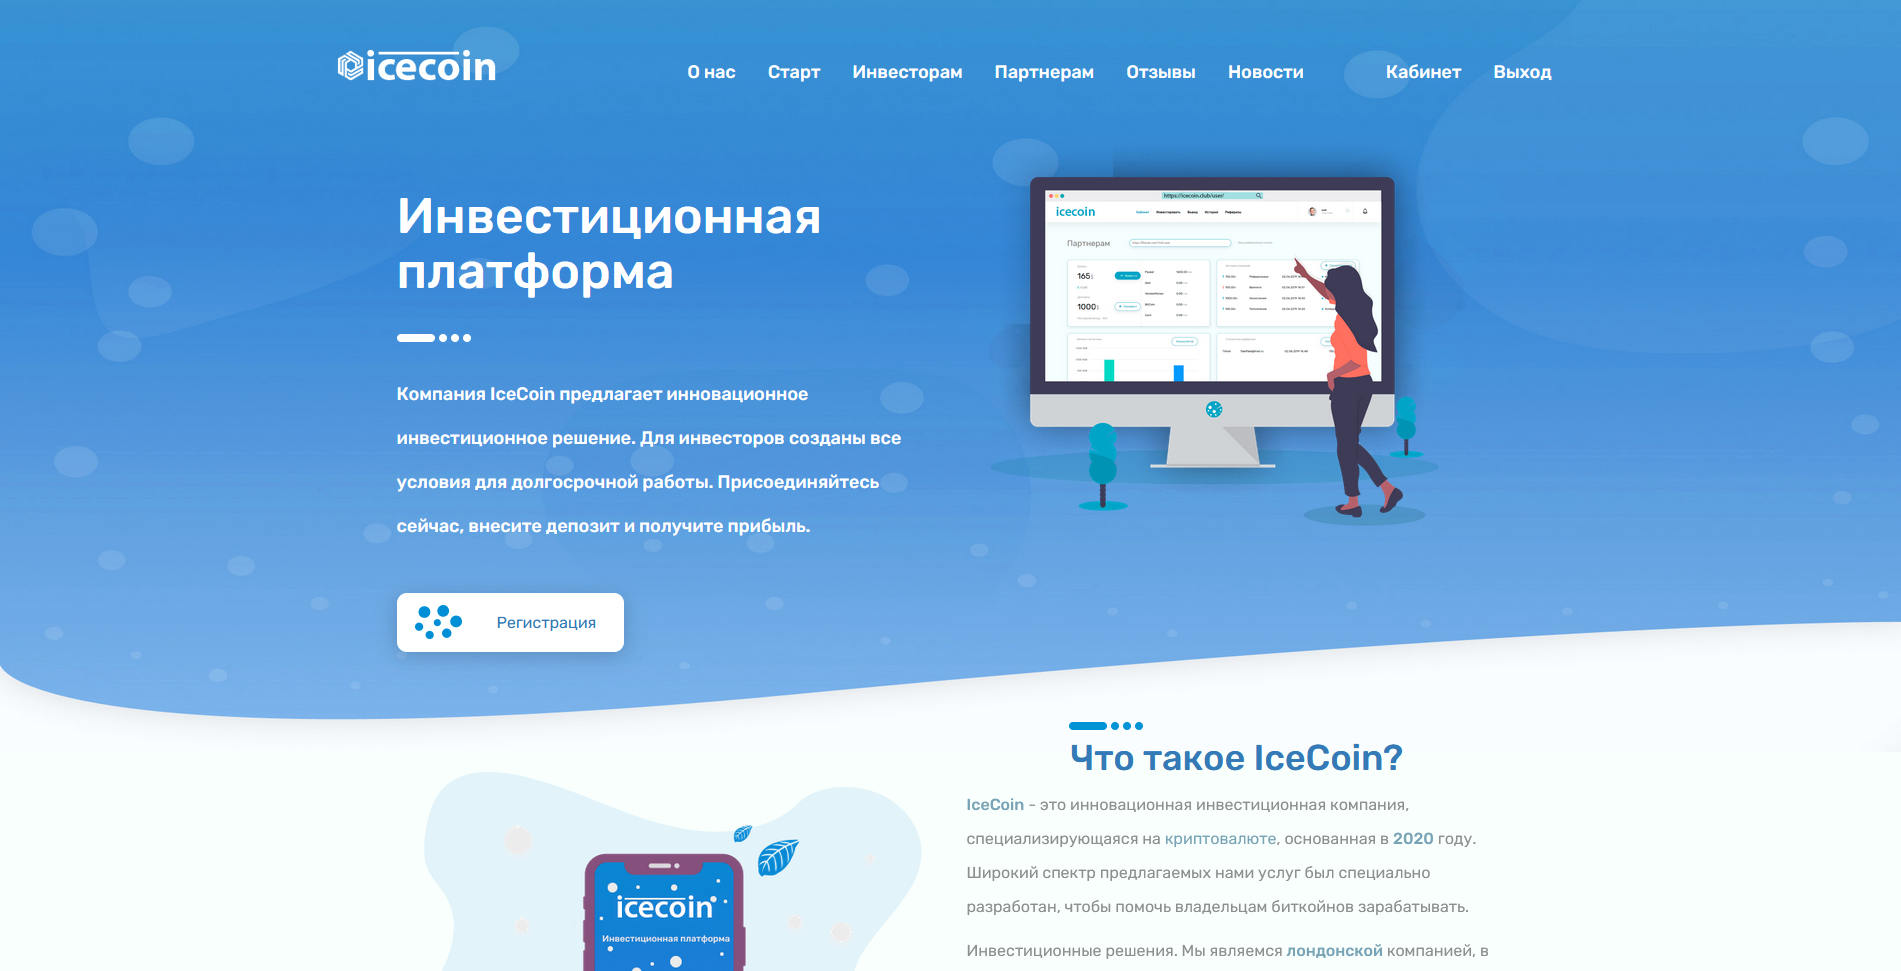 icecoin